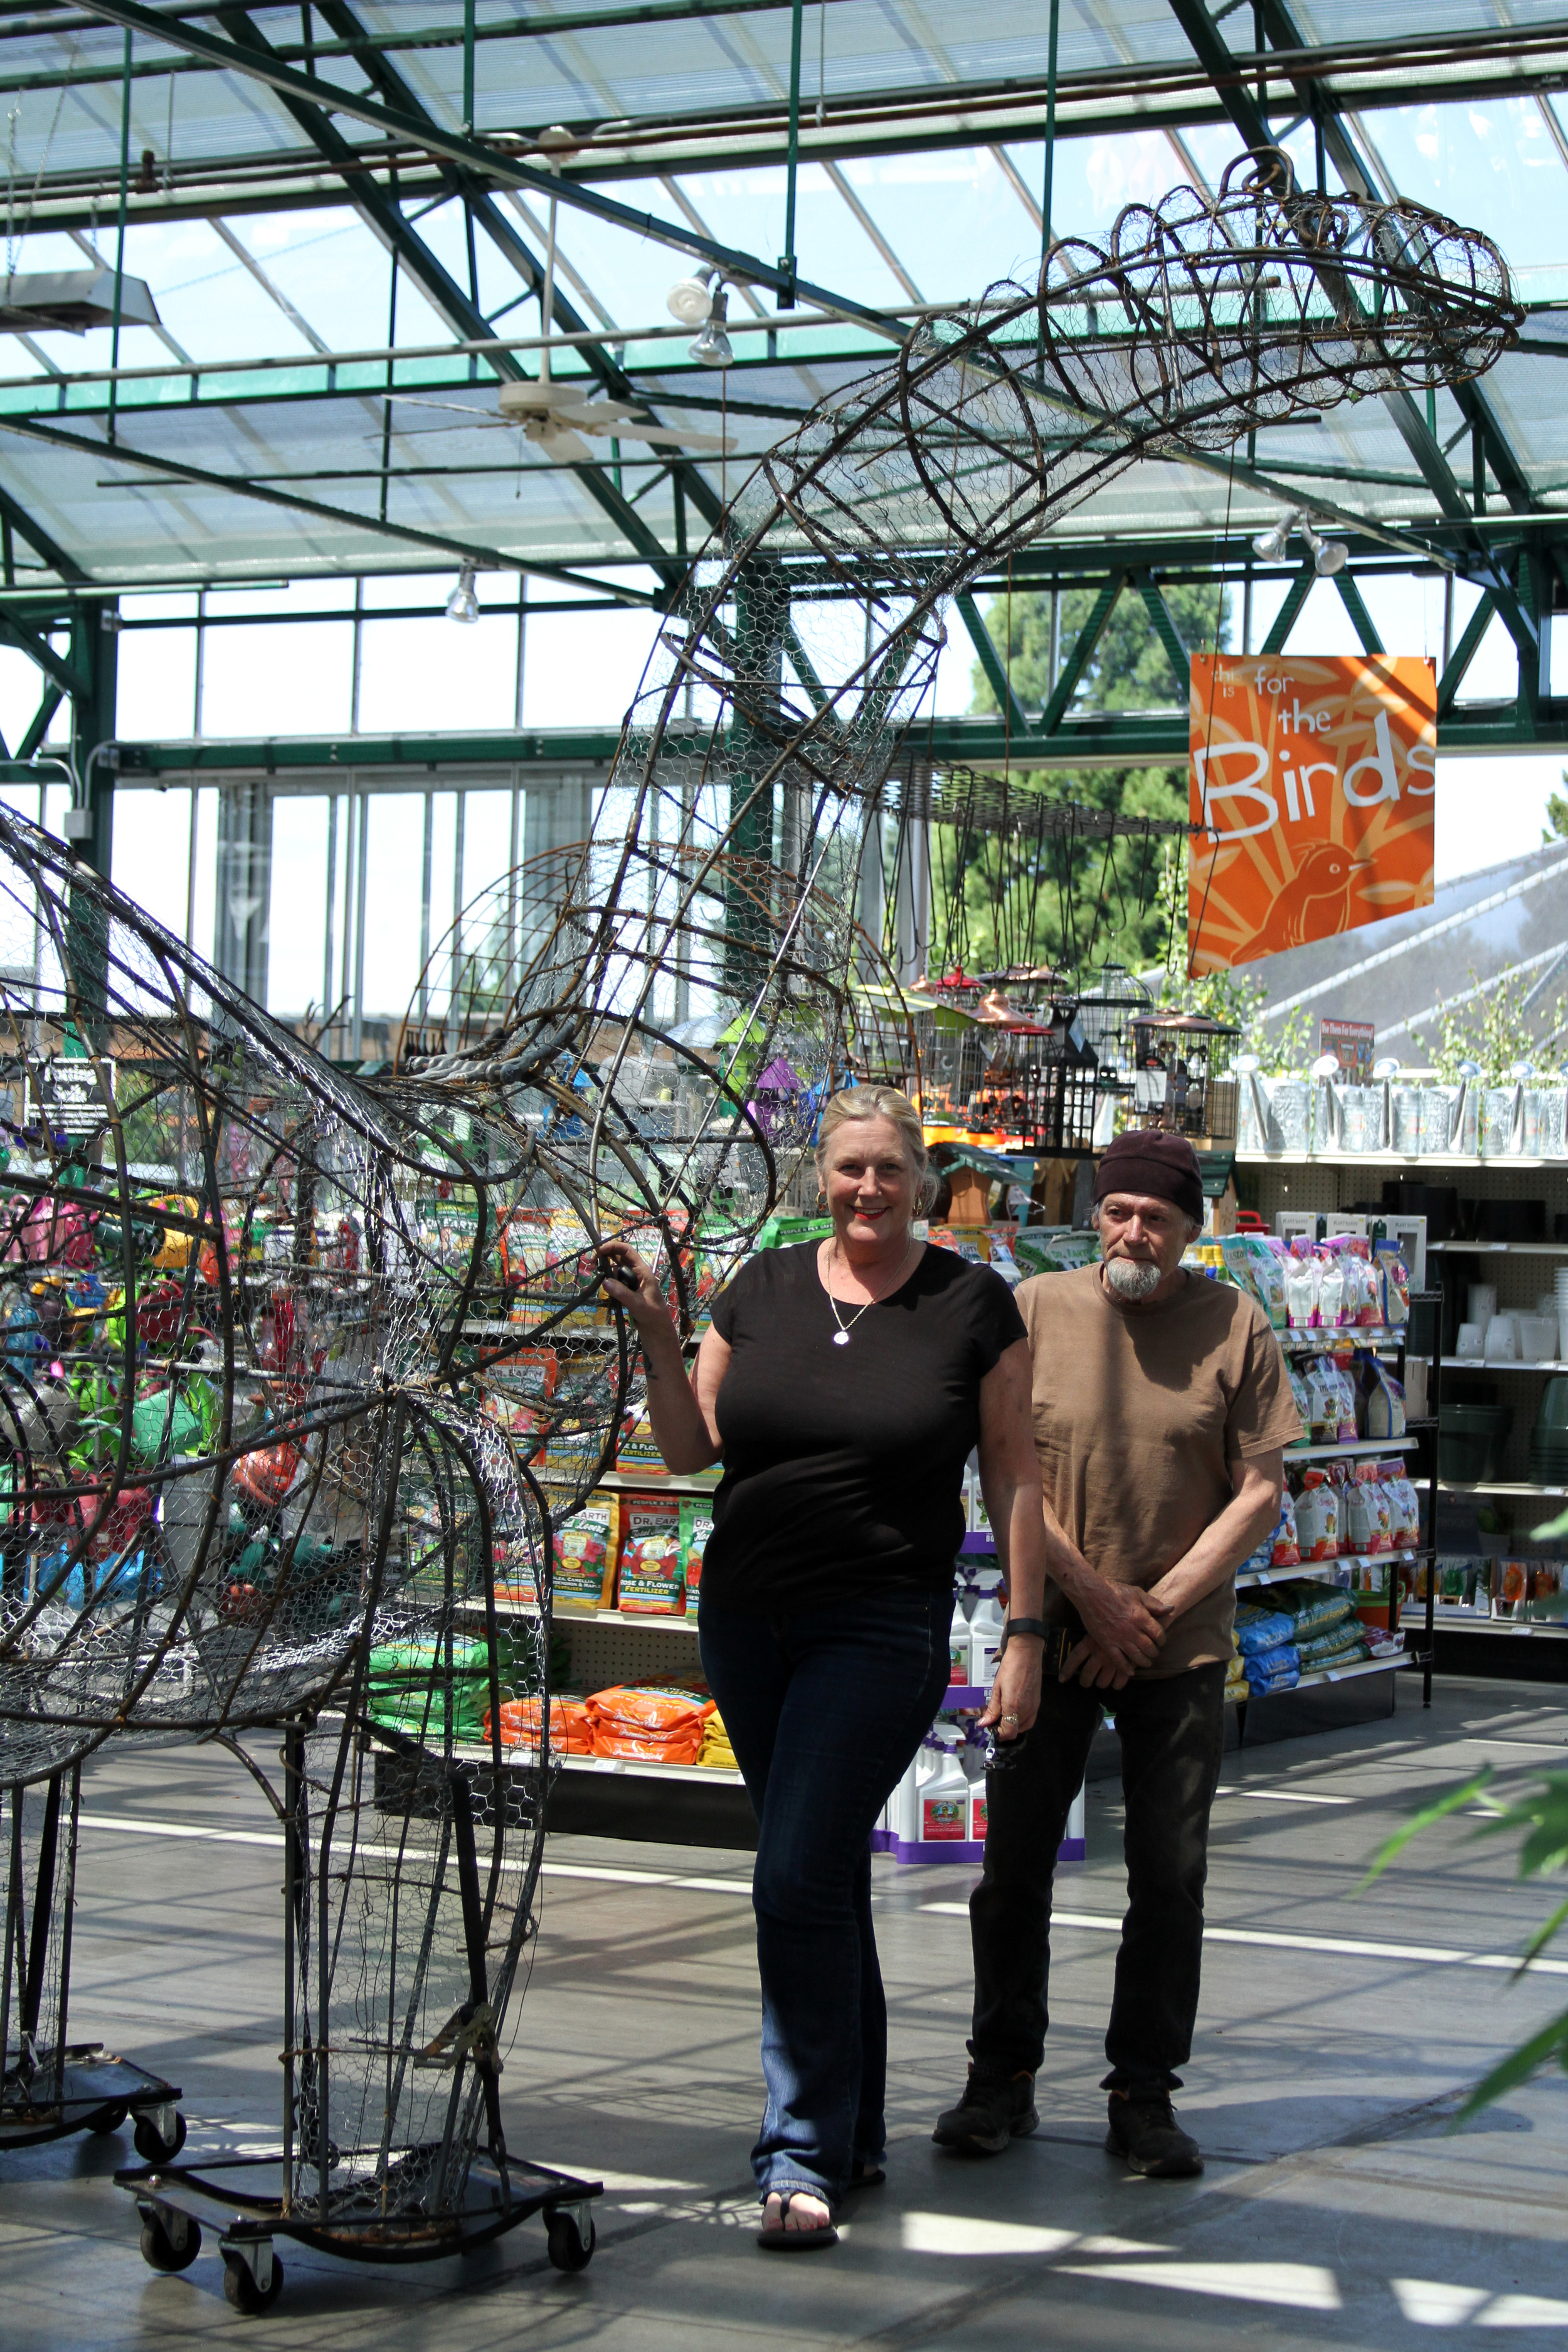 The artist and a member of her assembly team standing near the newly-installed sculpture